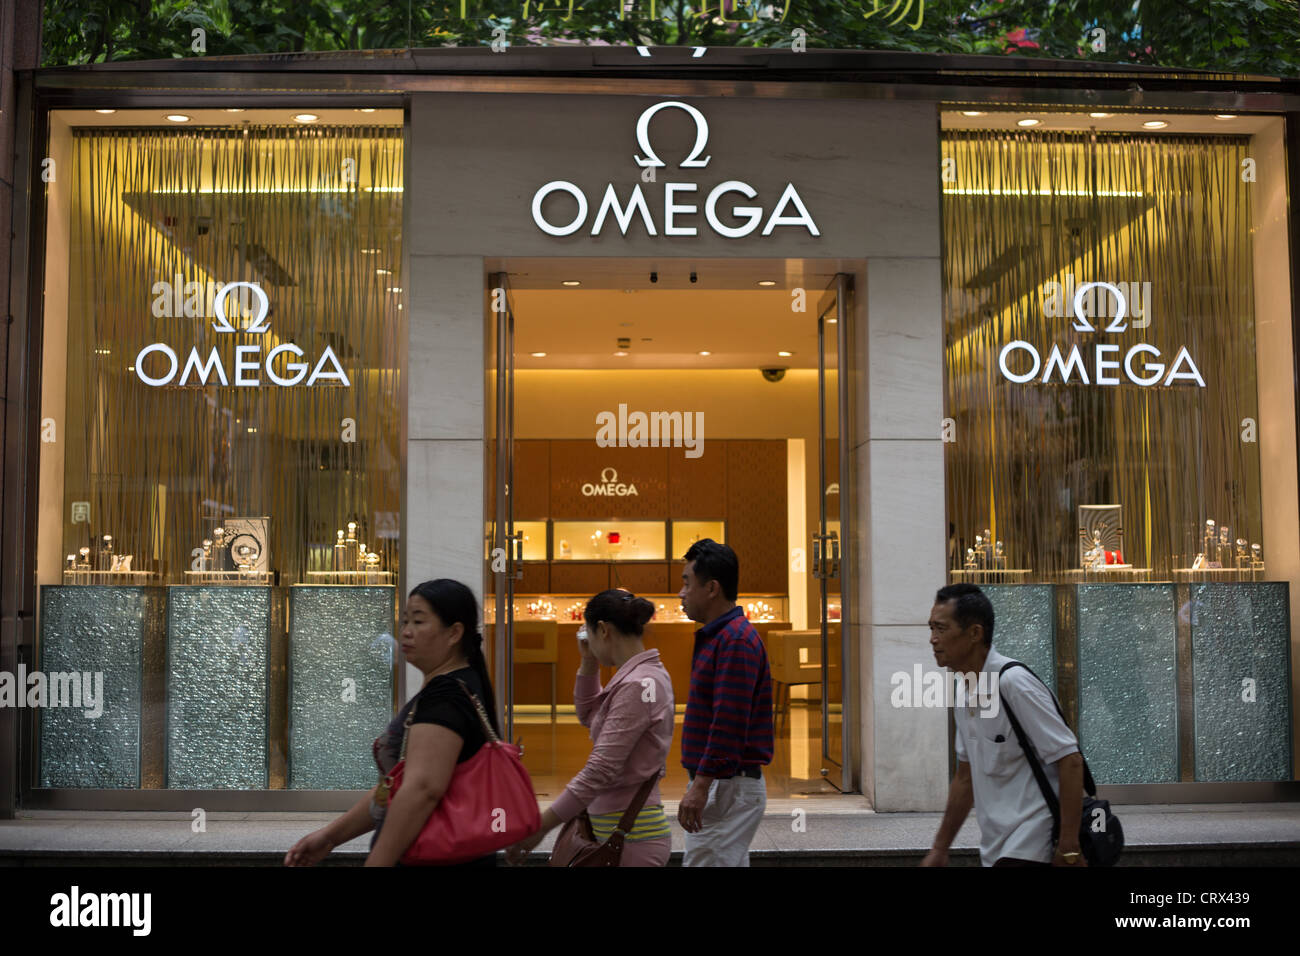 Omega orologi di marca shop in Nanjing Road, a Shanghai in Cina. Foto Stock